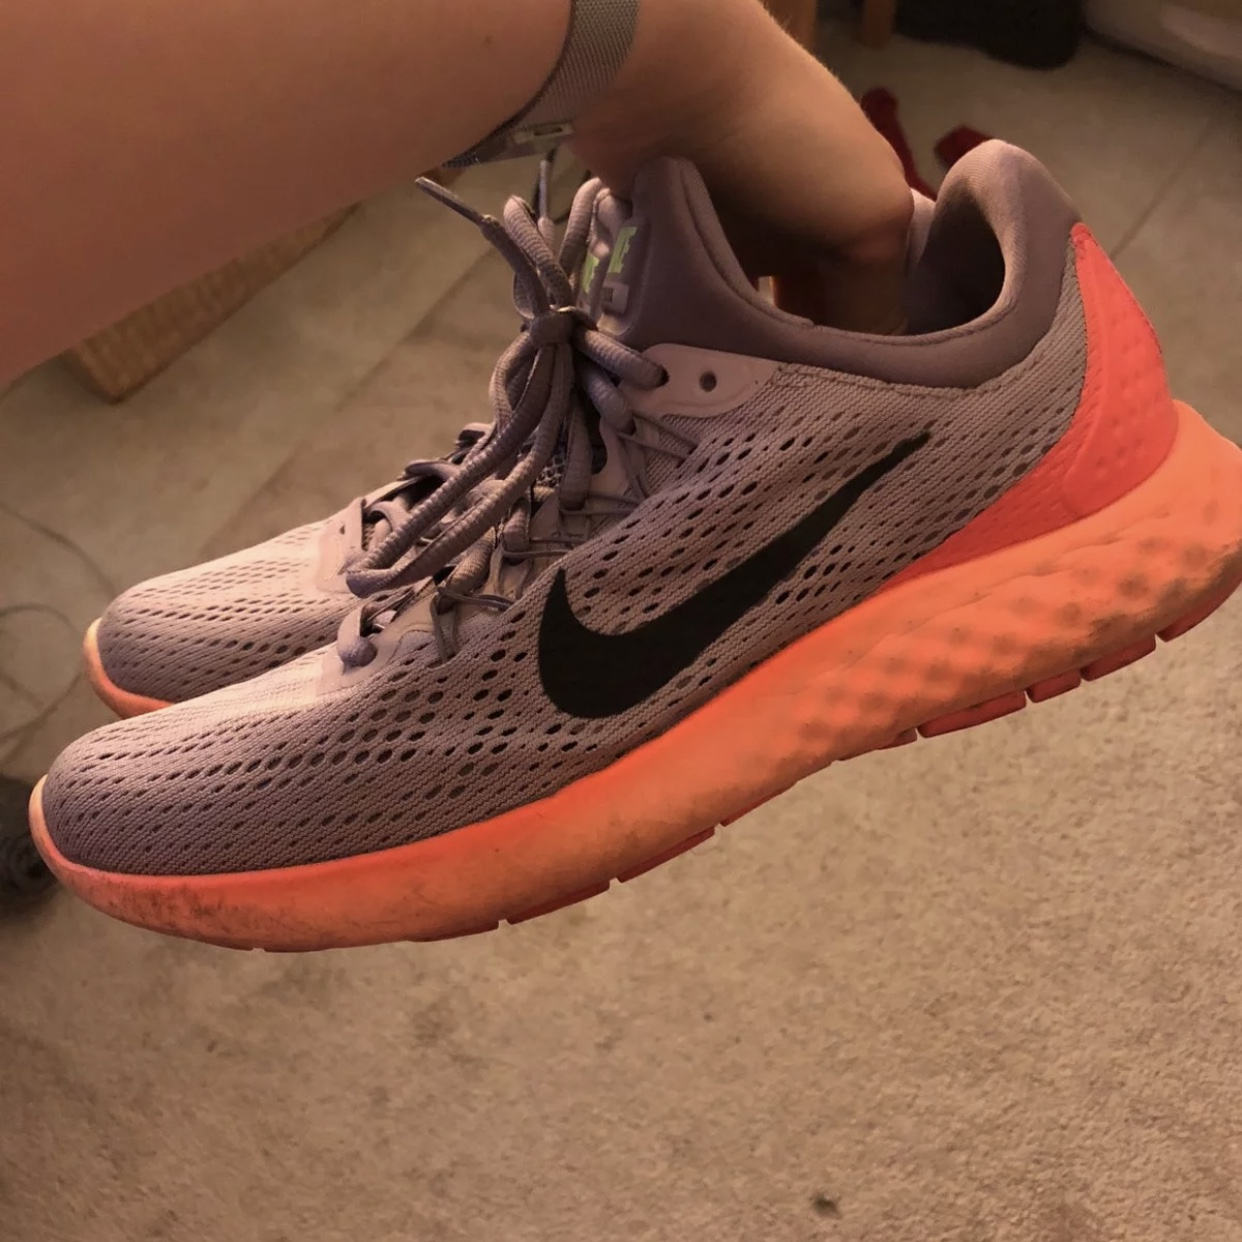 Nike run easy shoes. Extremely